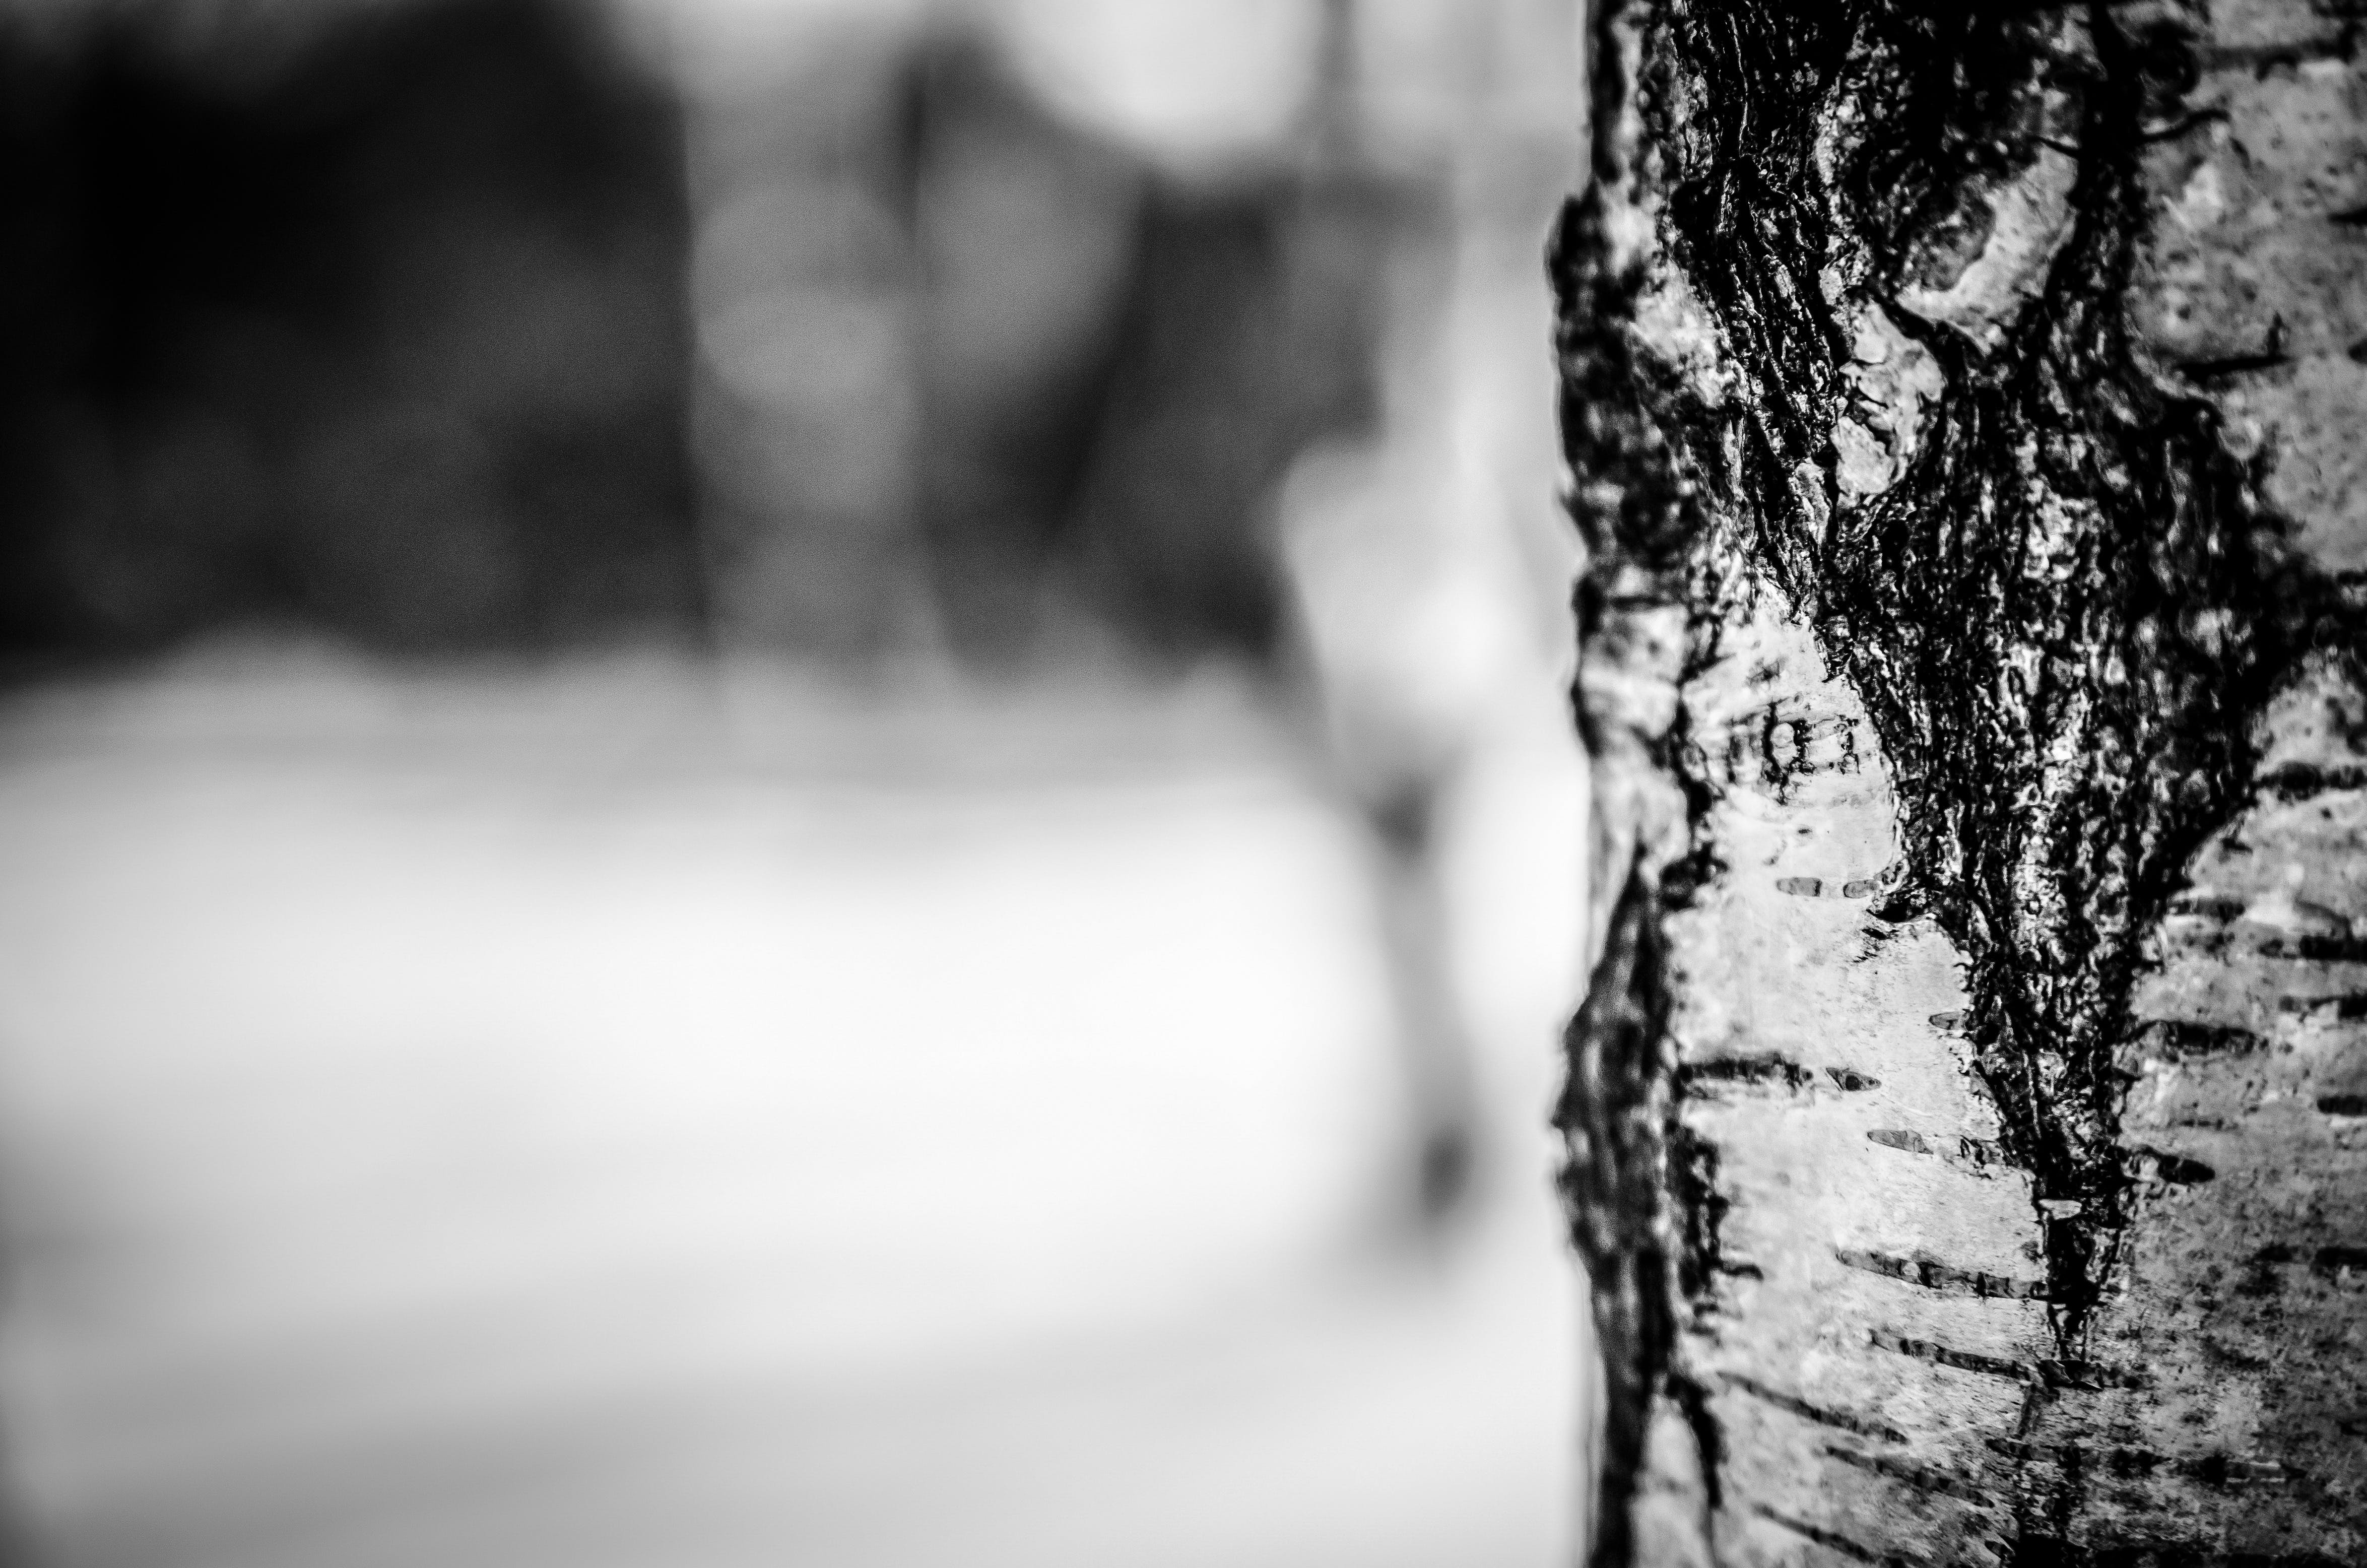 Grayscale Photography of Tree Bark